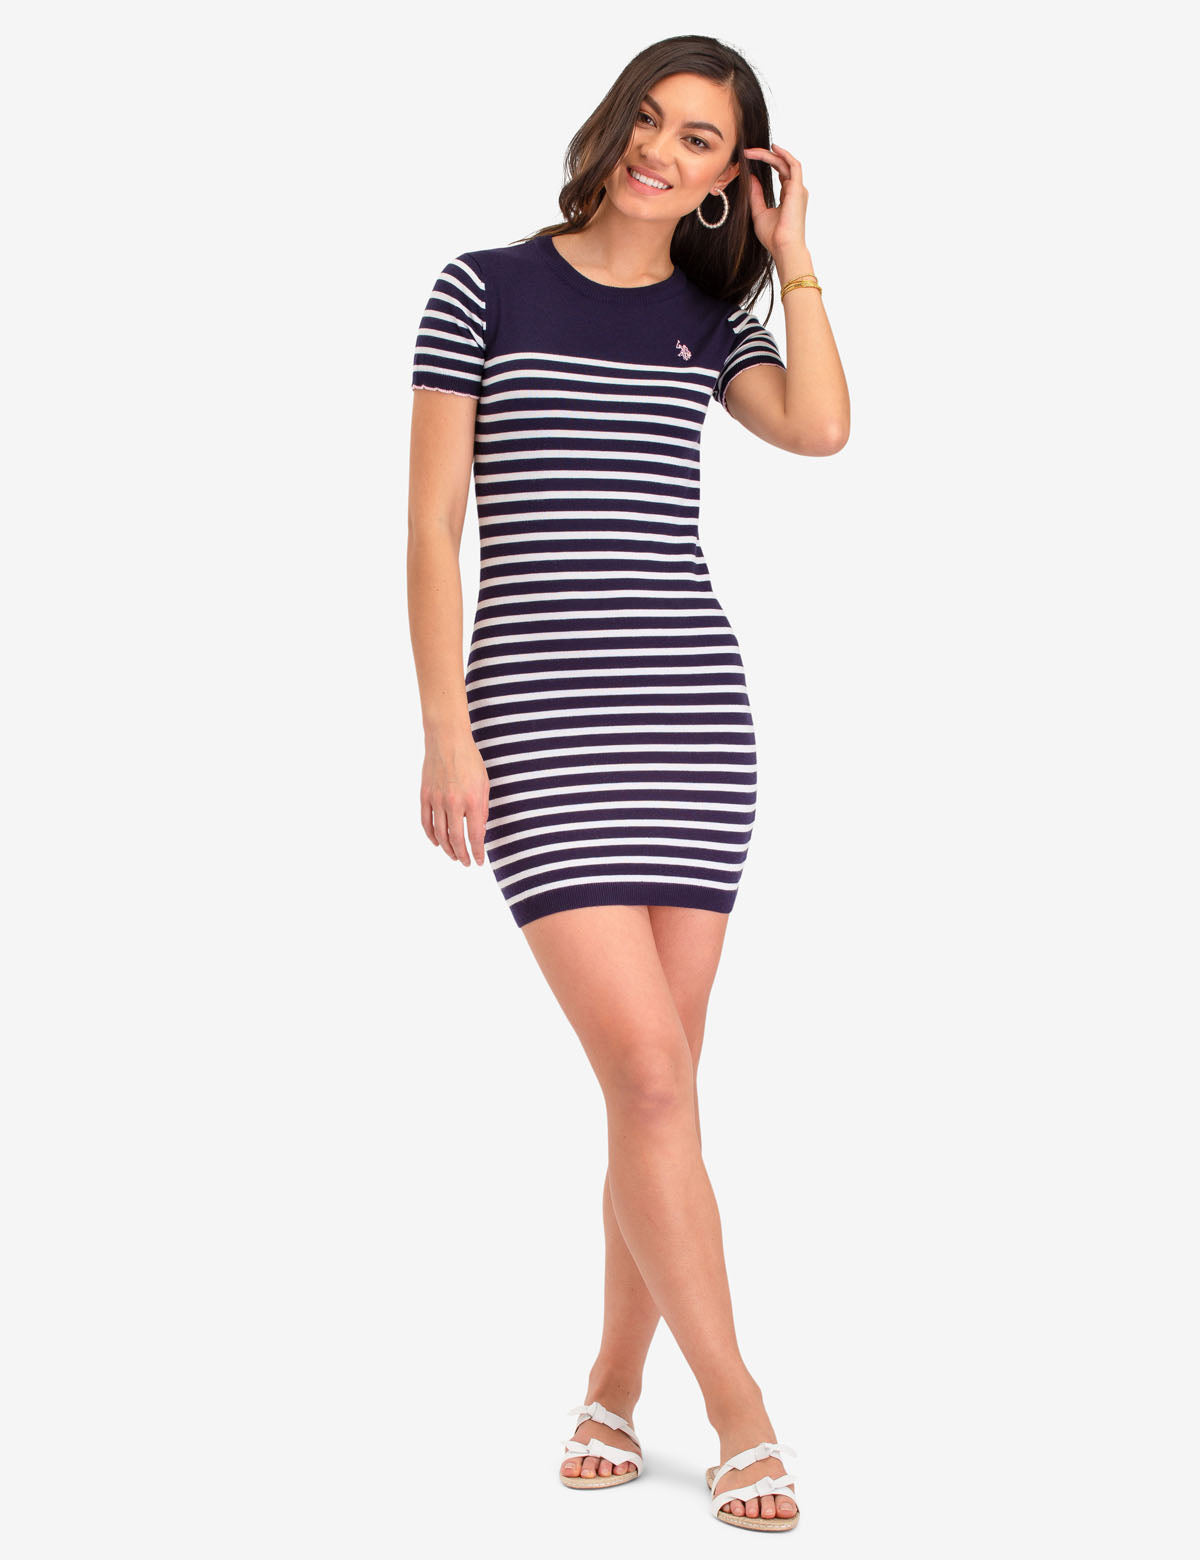 STRIPED SCALLOP SWEATER DRESS - U.S. Polo Assn.